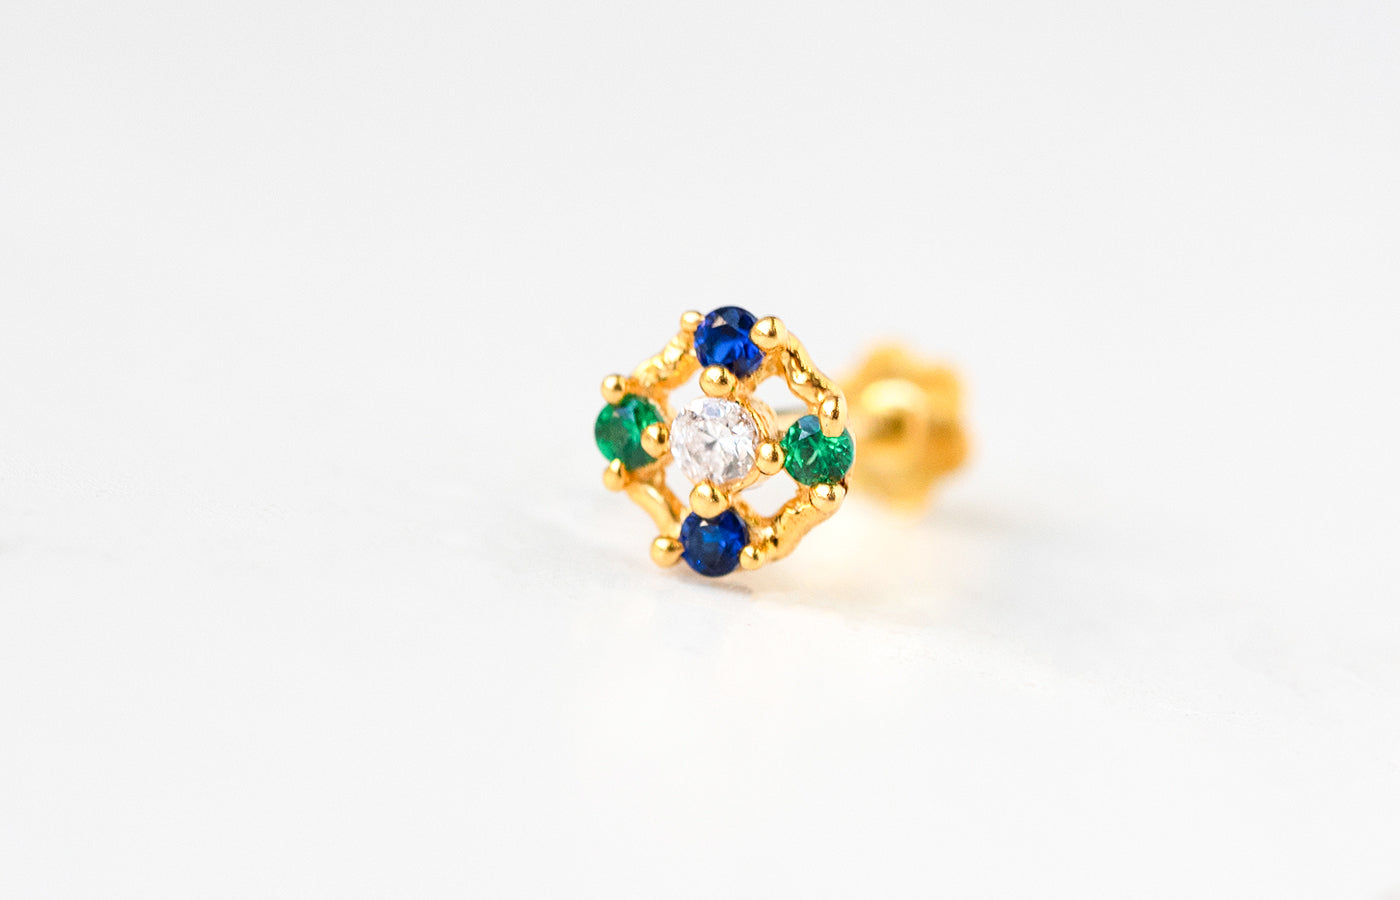 18ct Yellow Gold Screw Back Nose Stud set with two Green and two Blue Cubic Zirconias NIP-4-320a